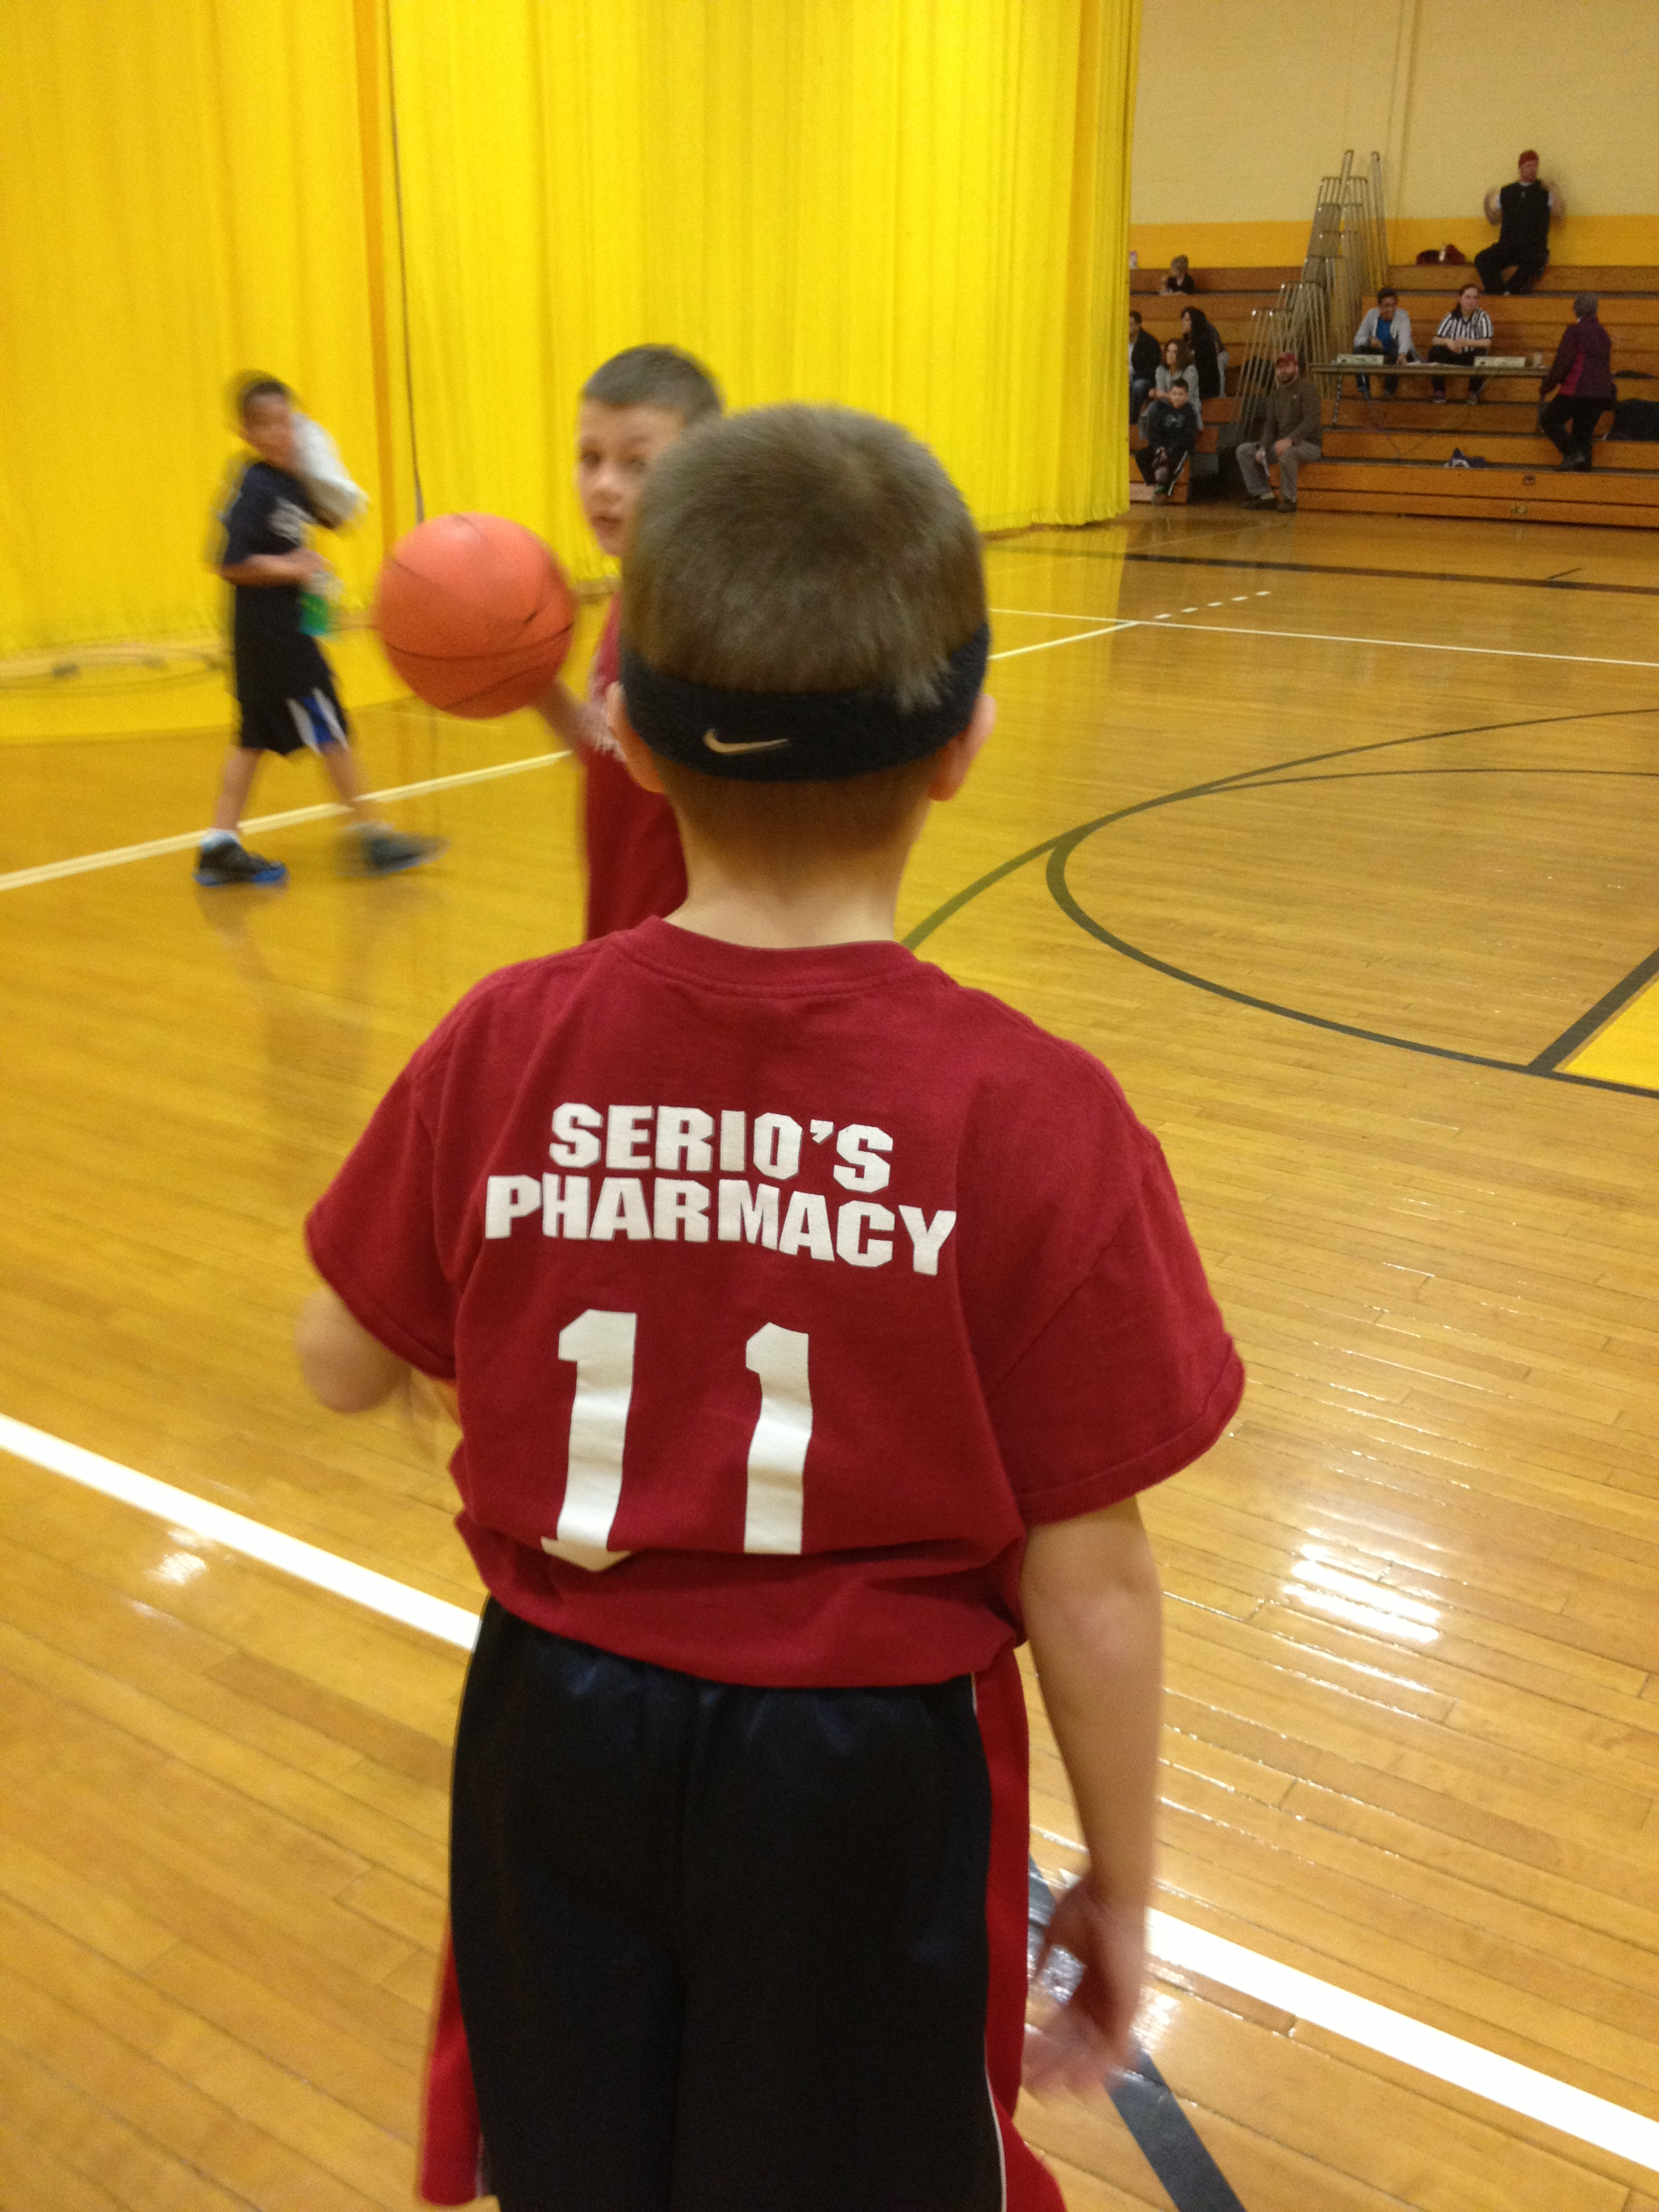 Serio's Pharmacy on the back of boys tshirt